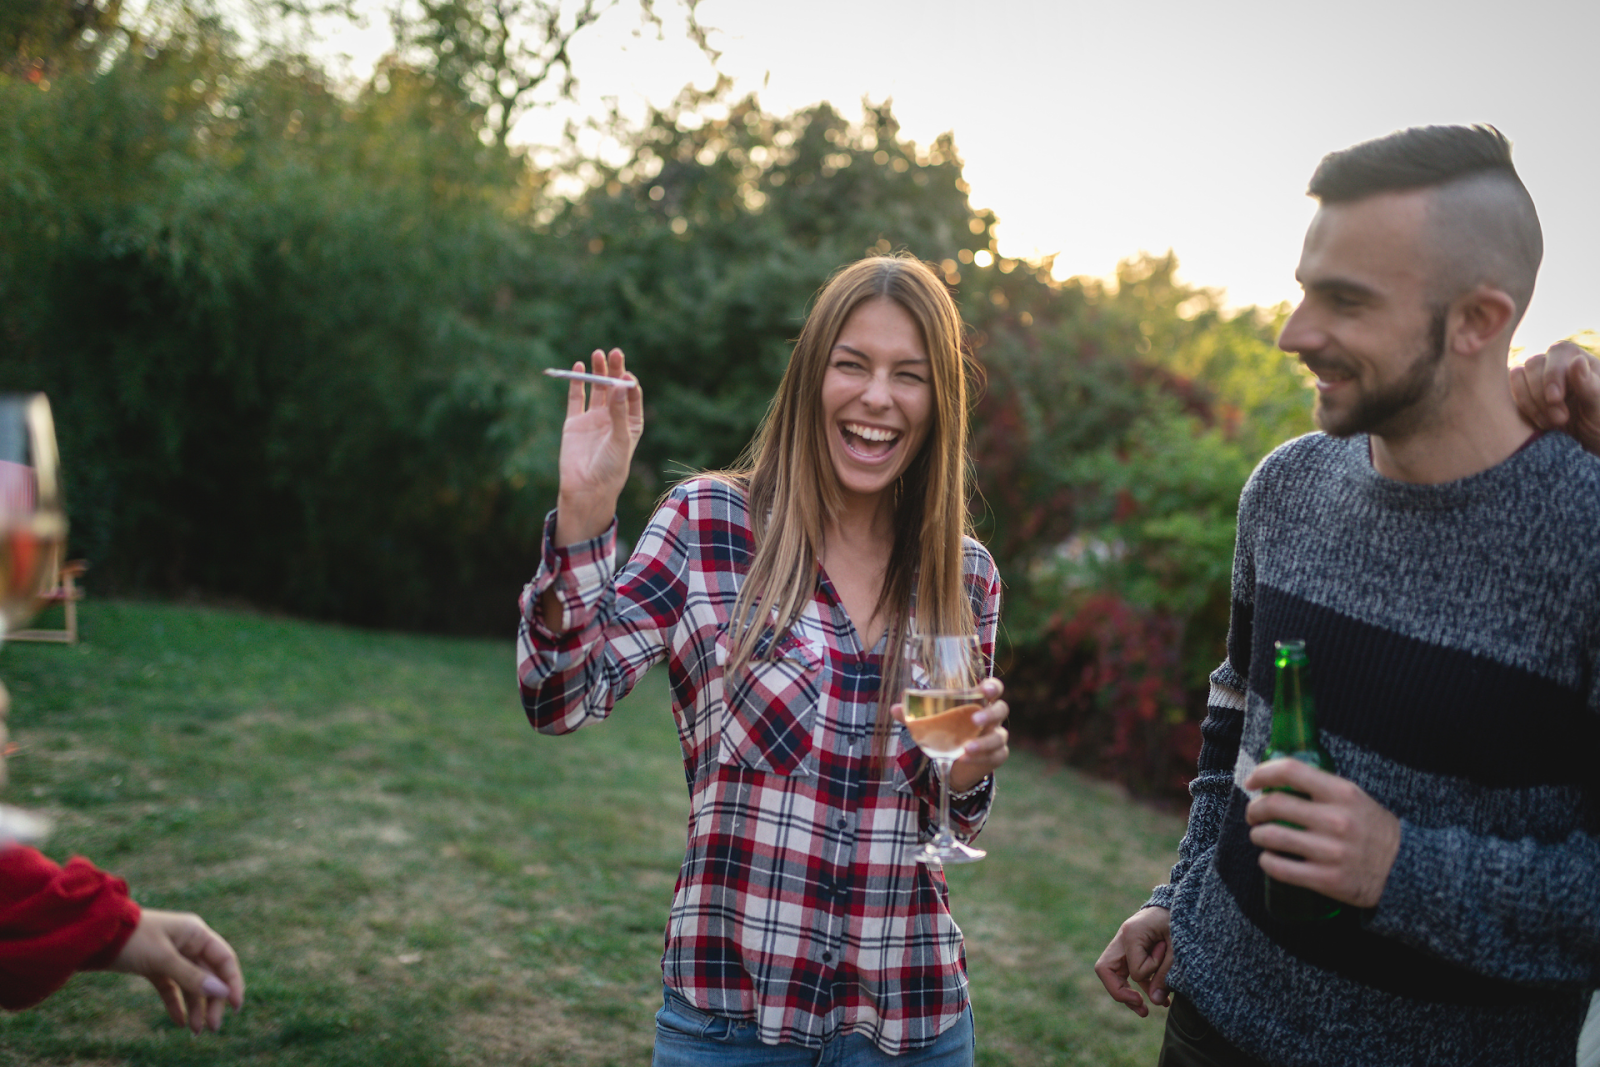 A woman laughing holding a joint at a party